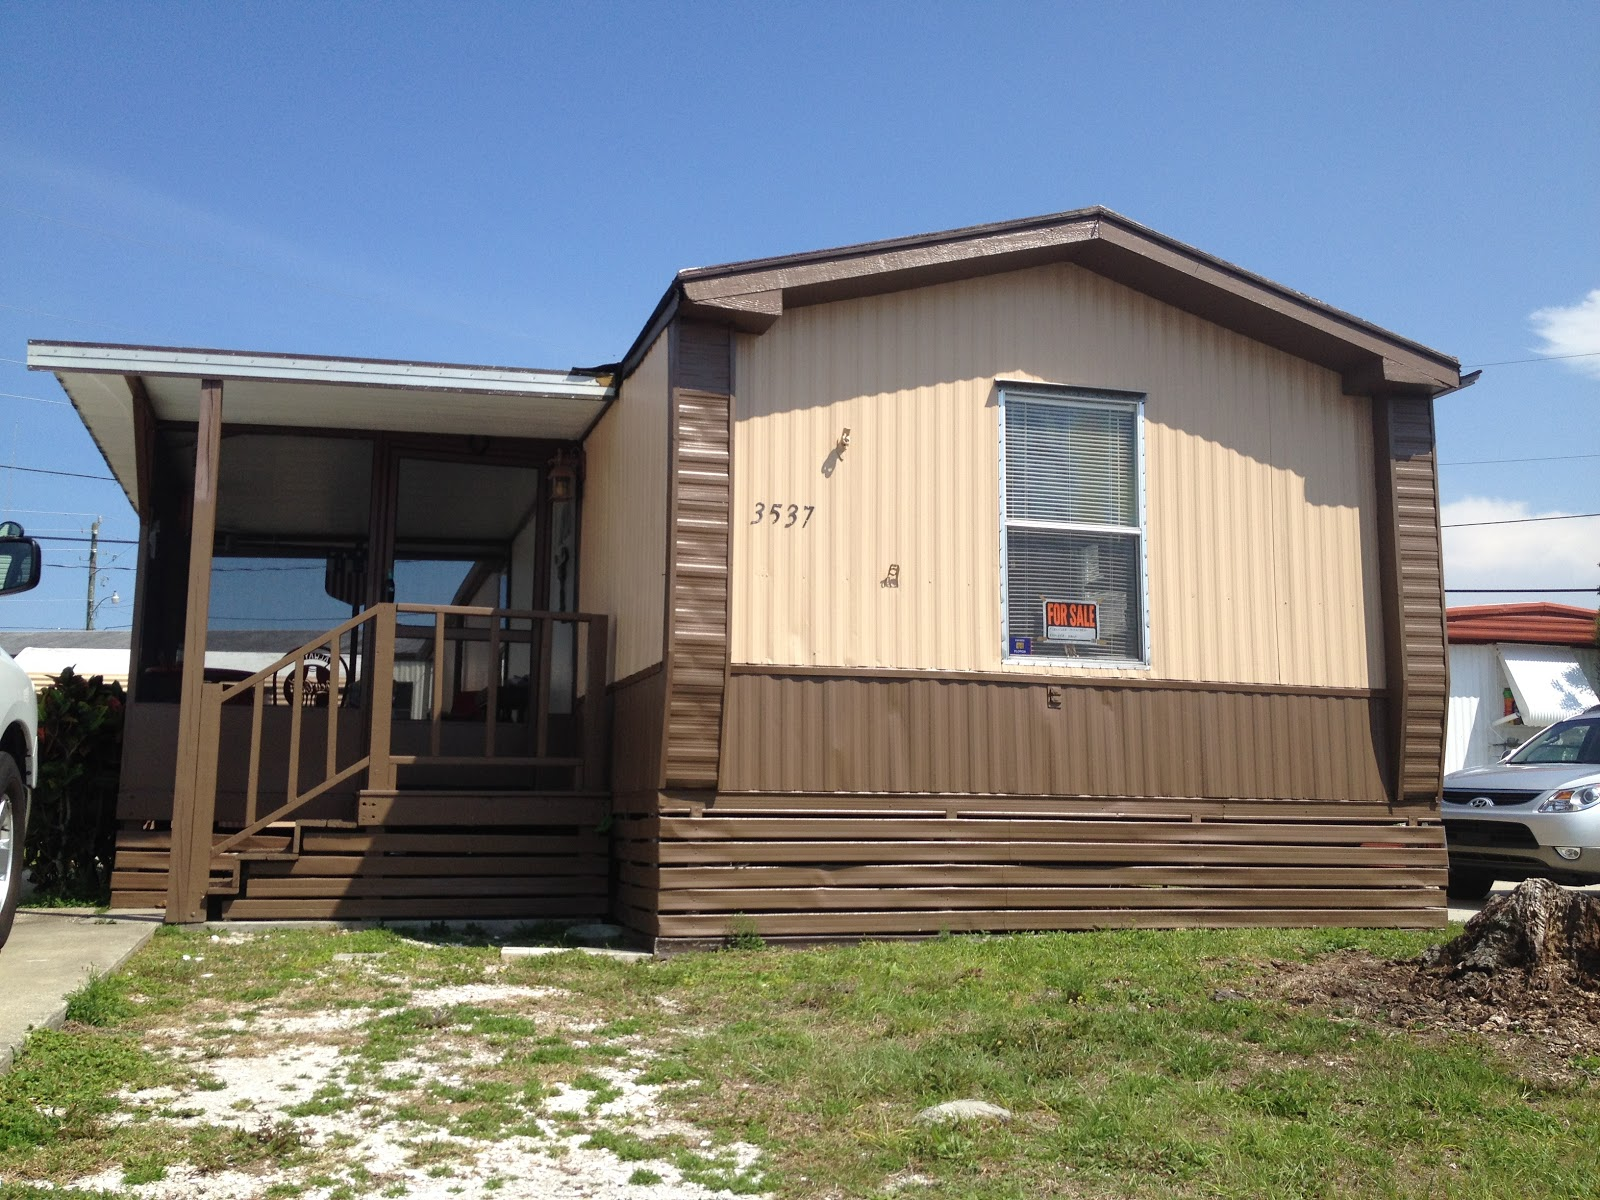 trail villa sold 2 bedroom 1 bath mobile home for sale 8 000